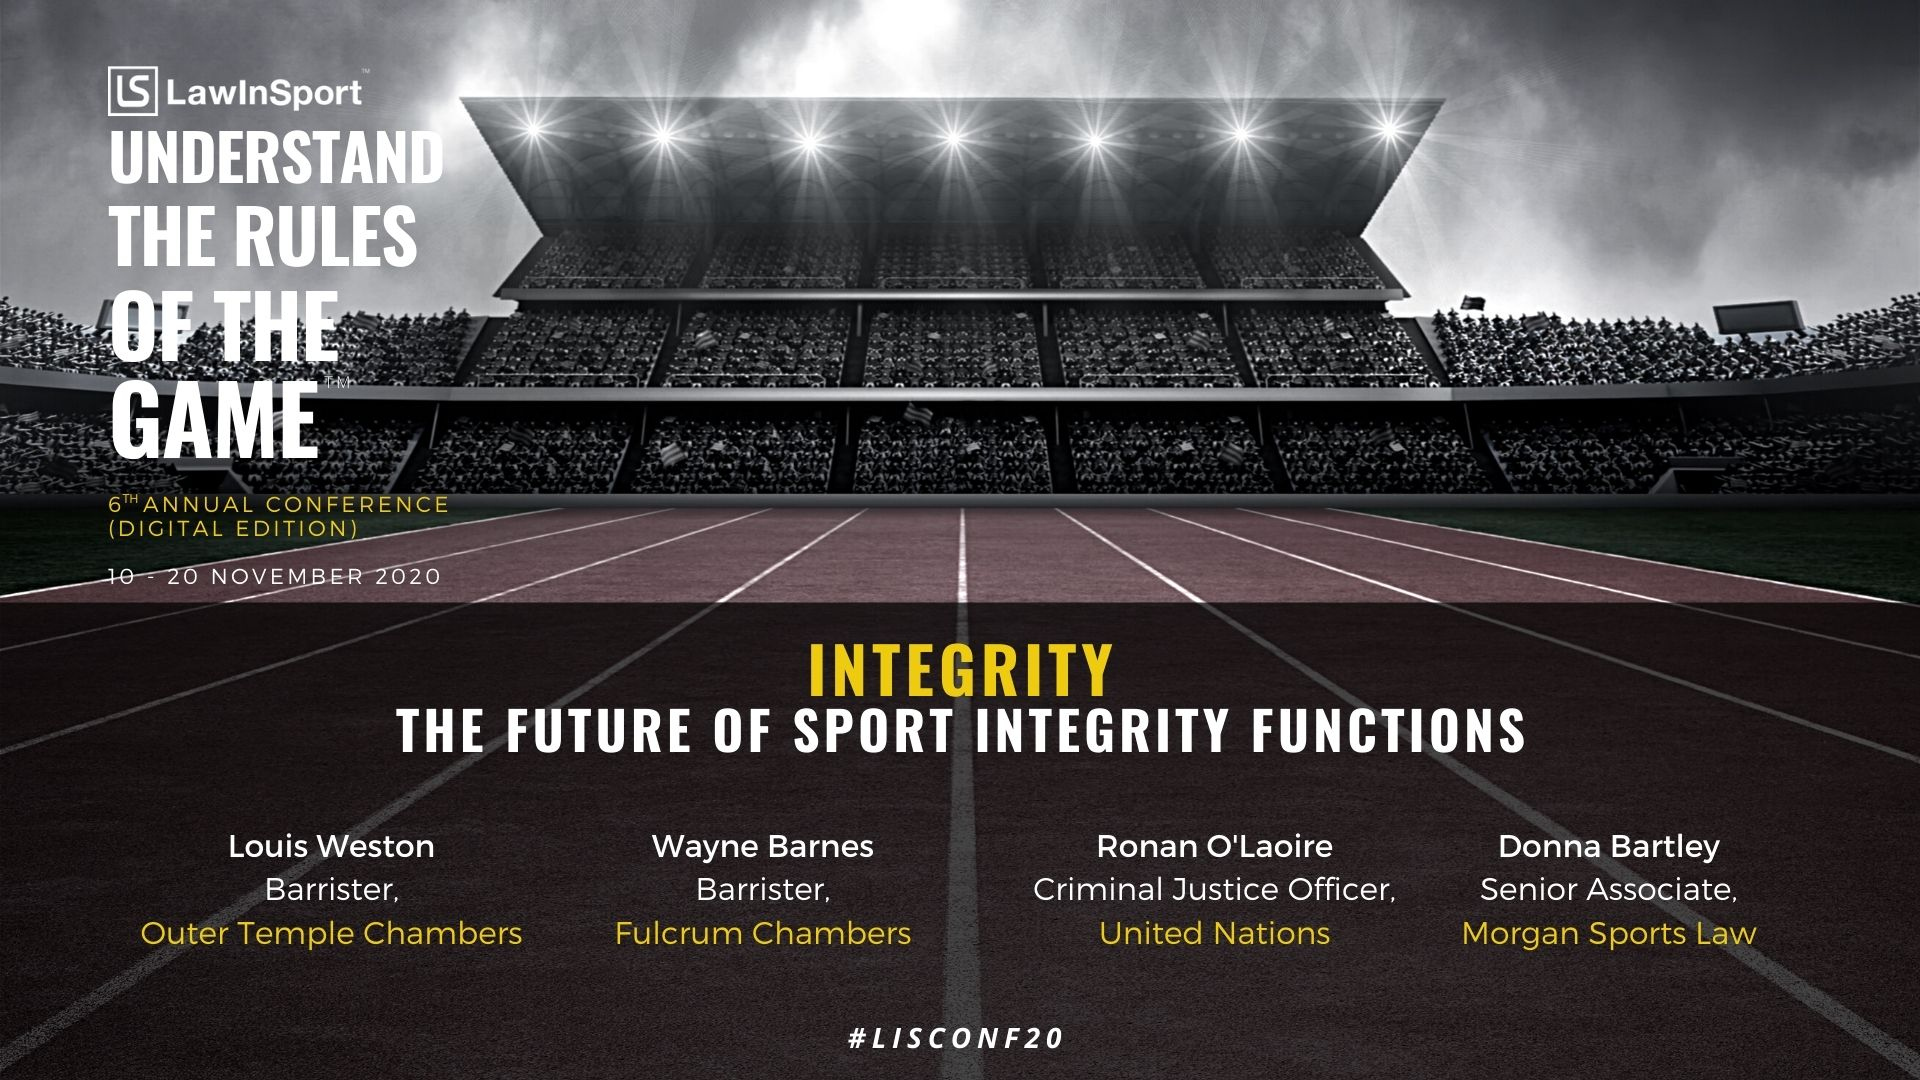 What is the future of sports integrity functions to be discussed at LawInSport's Annual 6th Conference